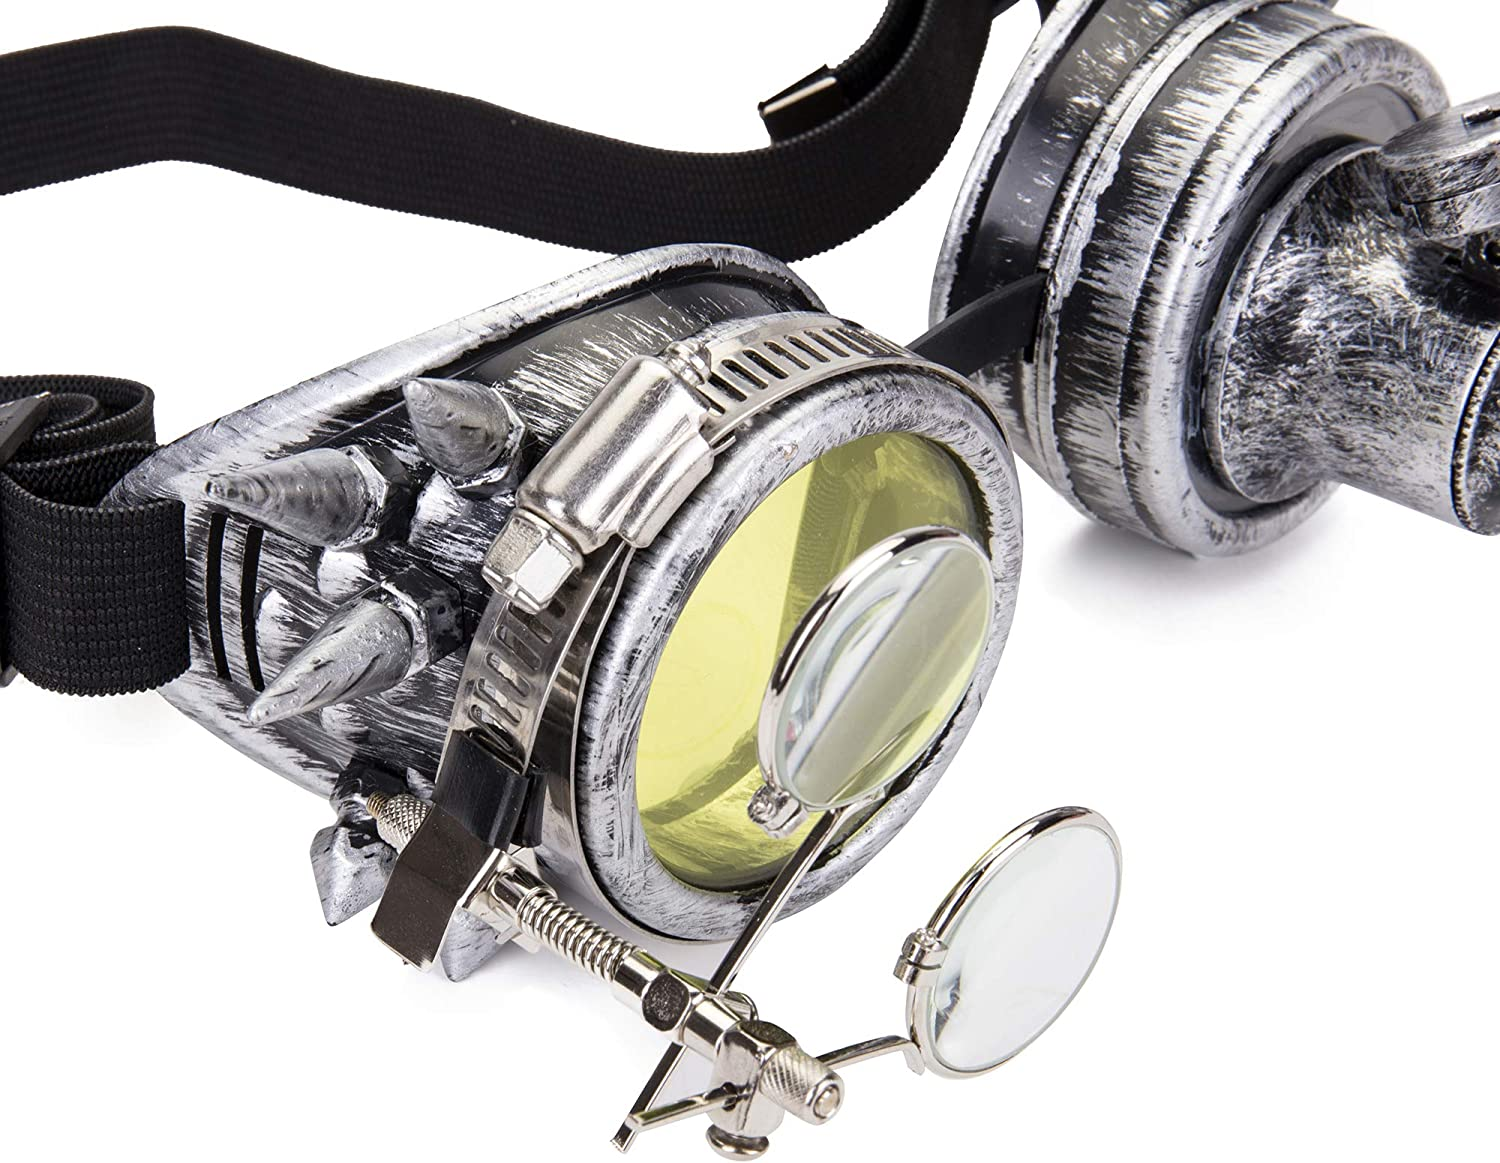 OMG/_Shop Festival Kaleidoscope Steampunk Goggles barbed Wire Ocular Loupe